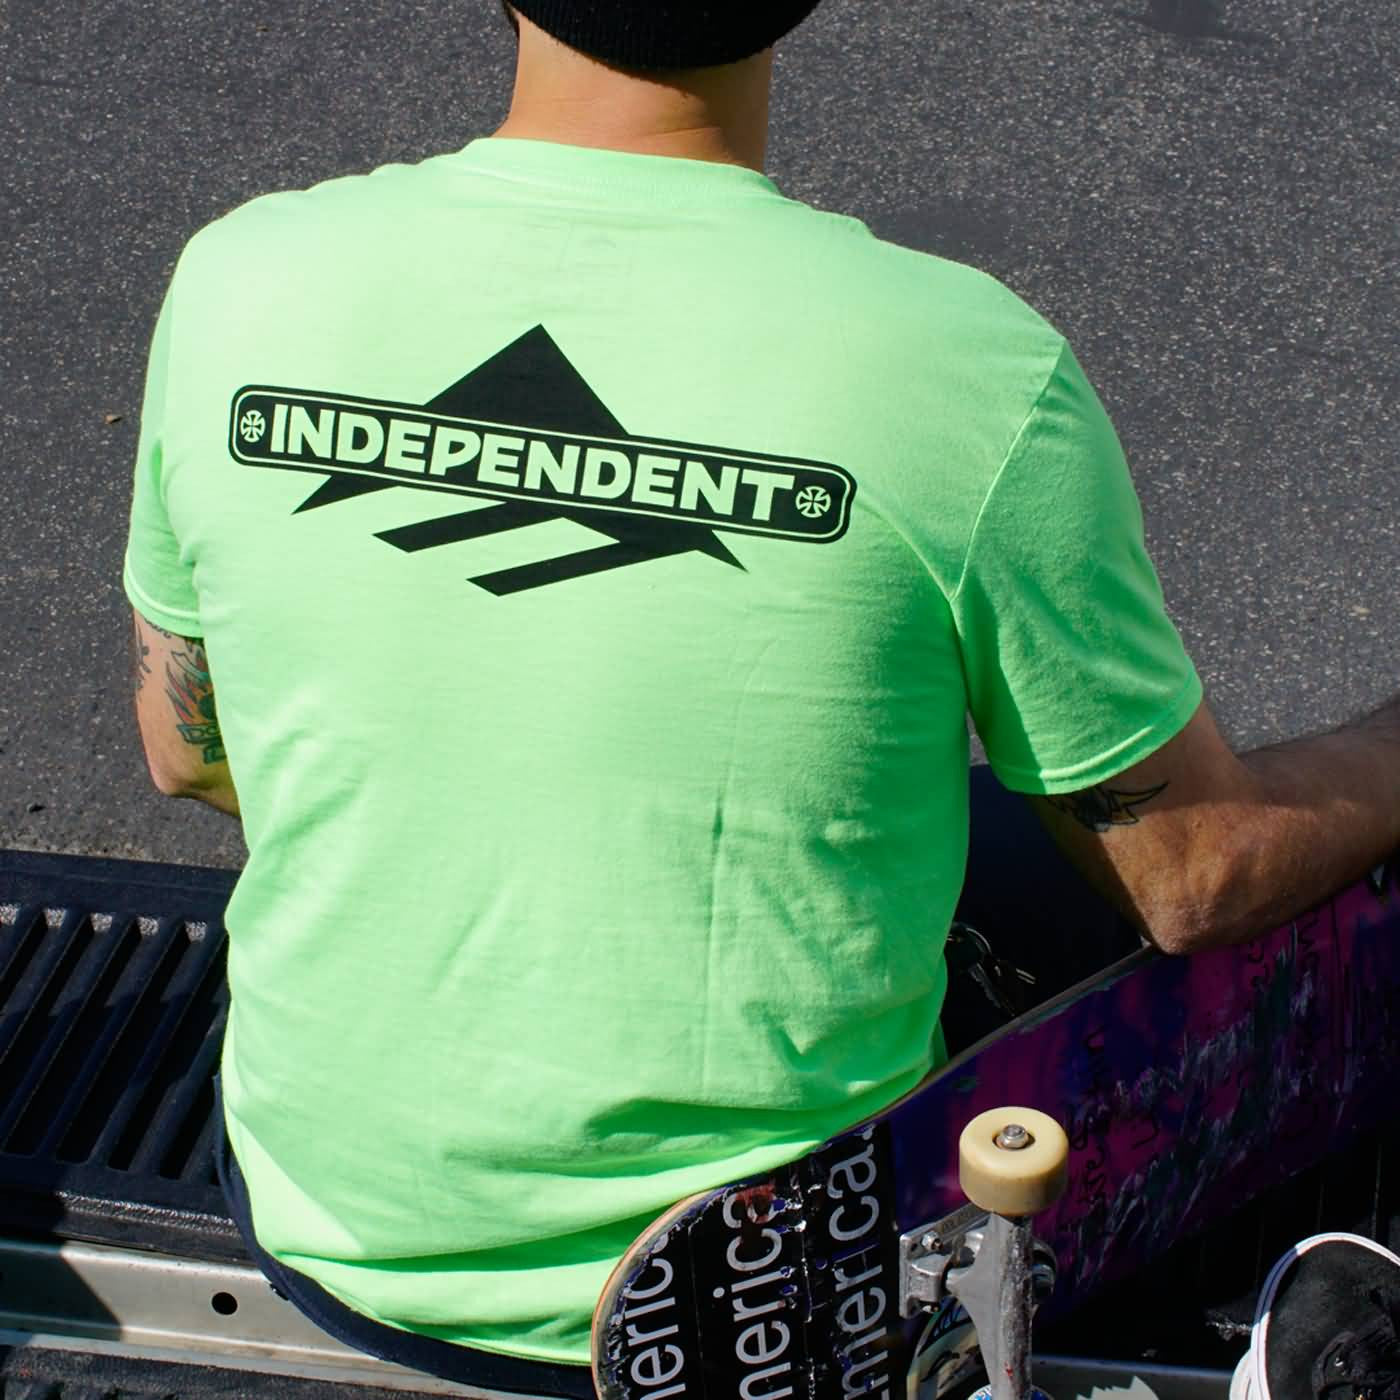 Emerica x Independent Trucks 2017 Collab   Skate Apparel & Footwear Collection